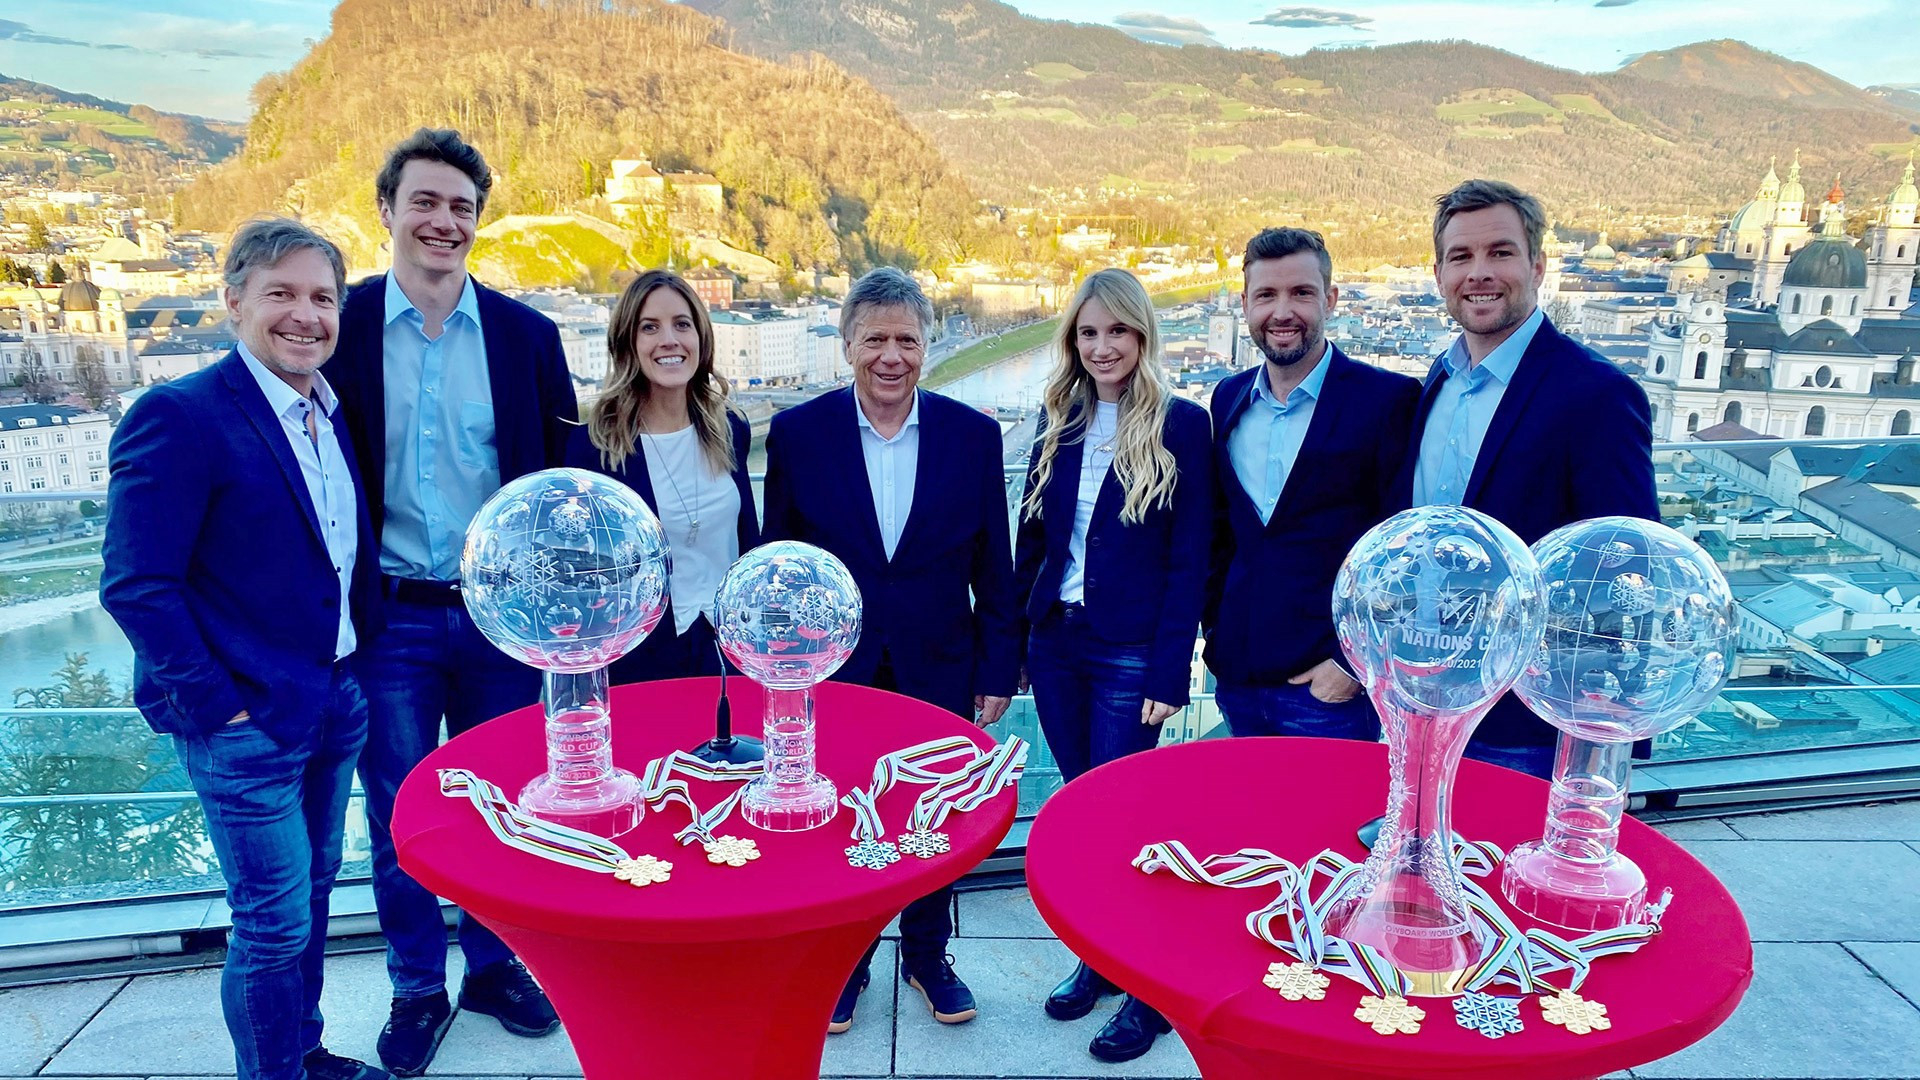 Austrian winter athletes honoured for 2020-2021 achievements